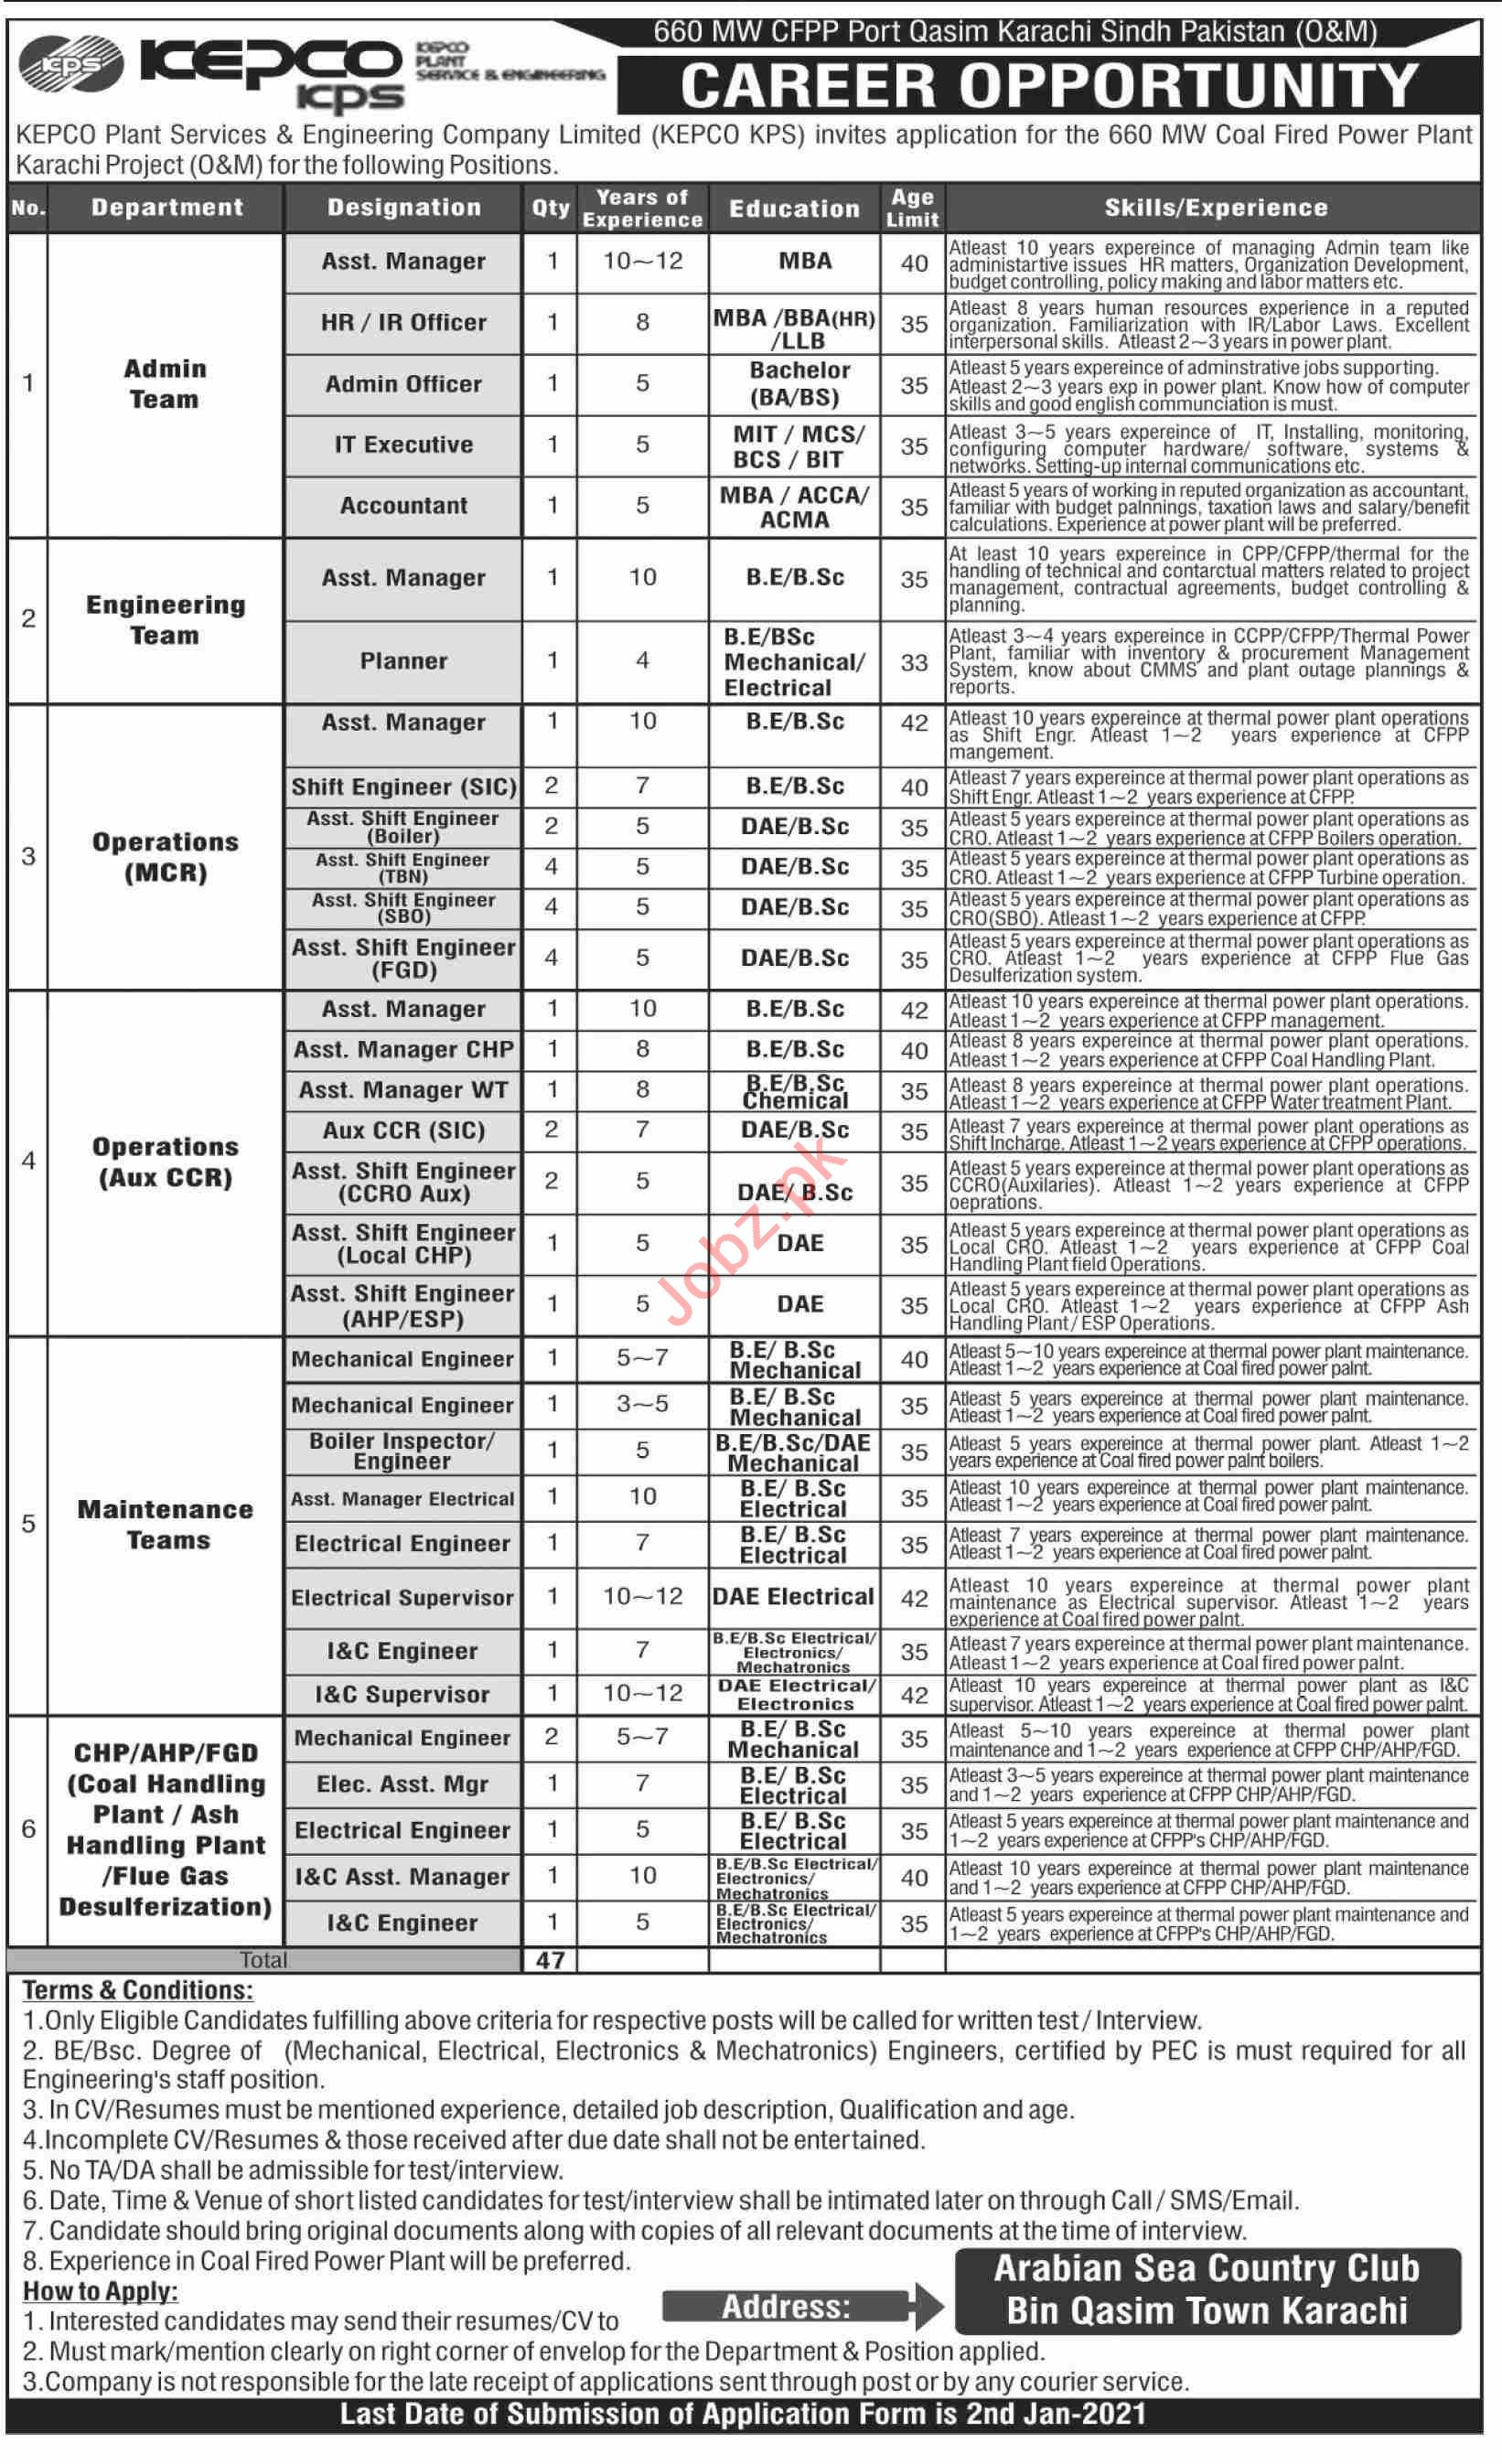 KEPCO Plant Services & Engineering Company Jobs 2021